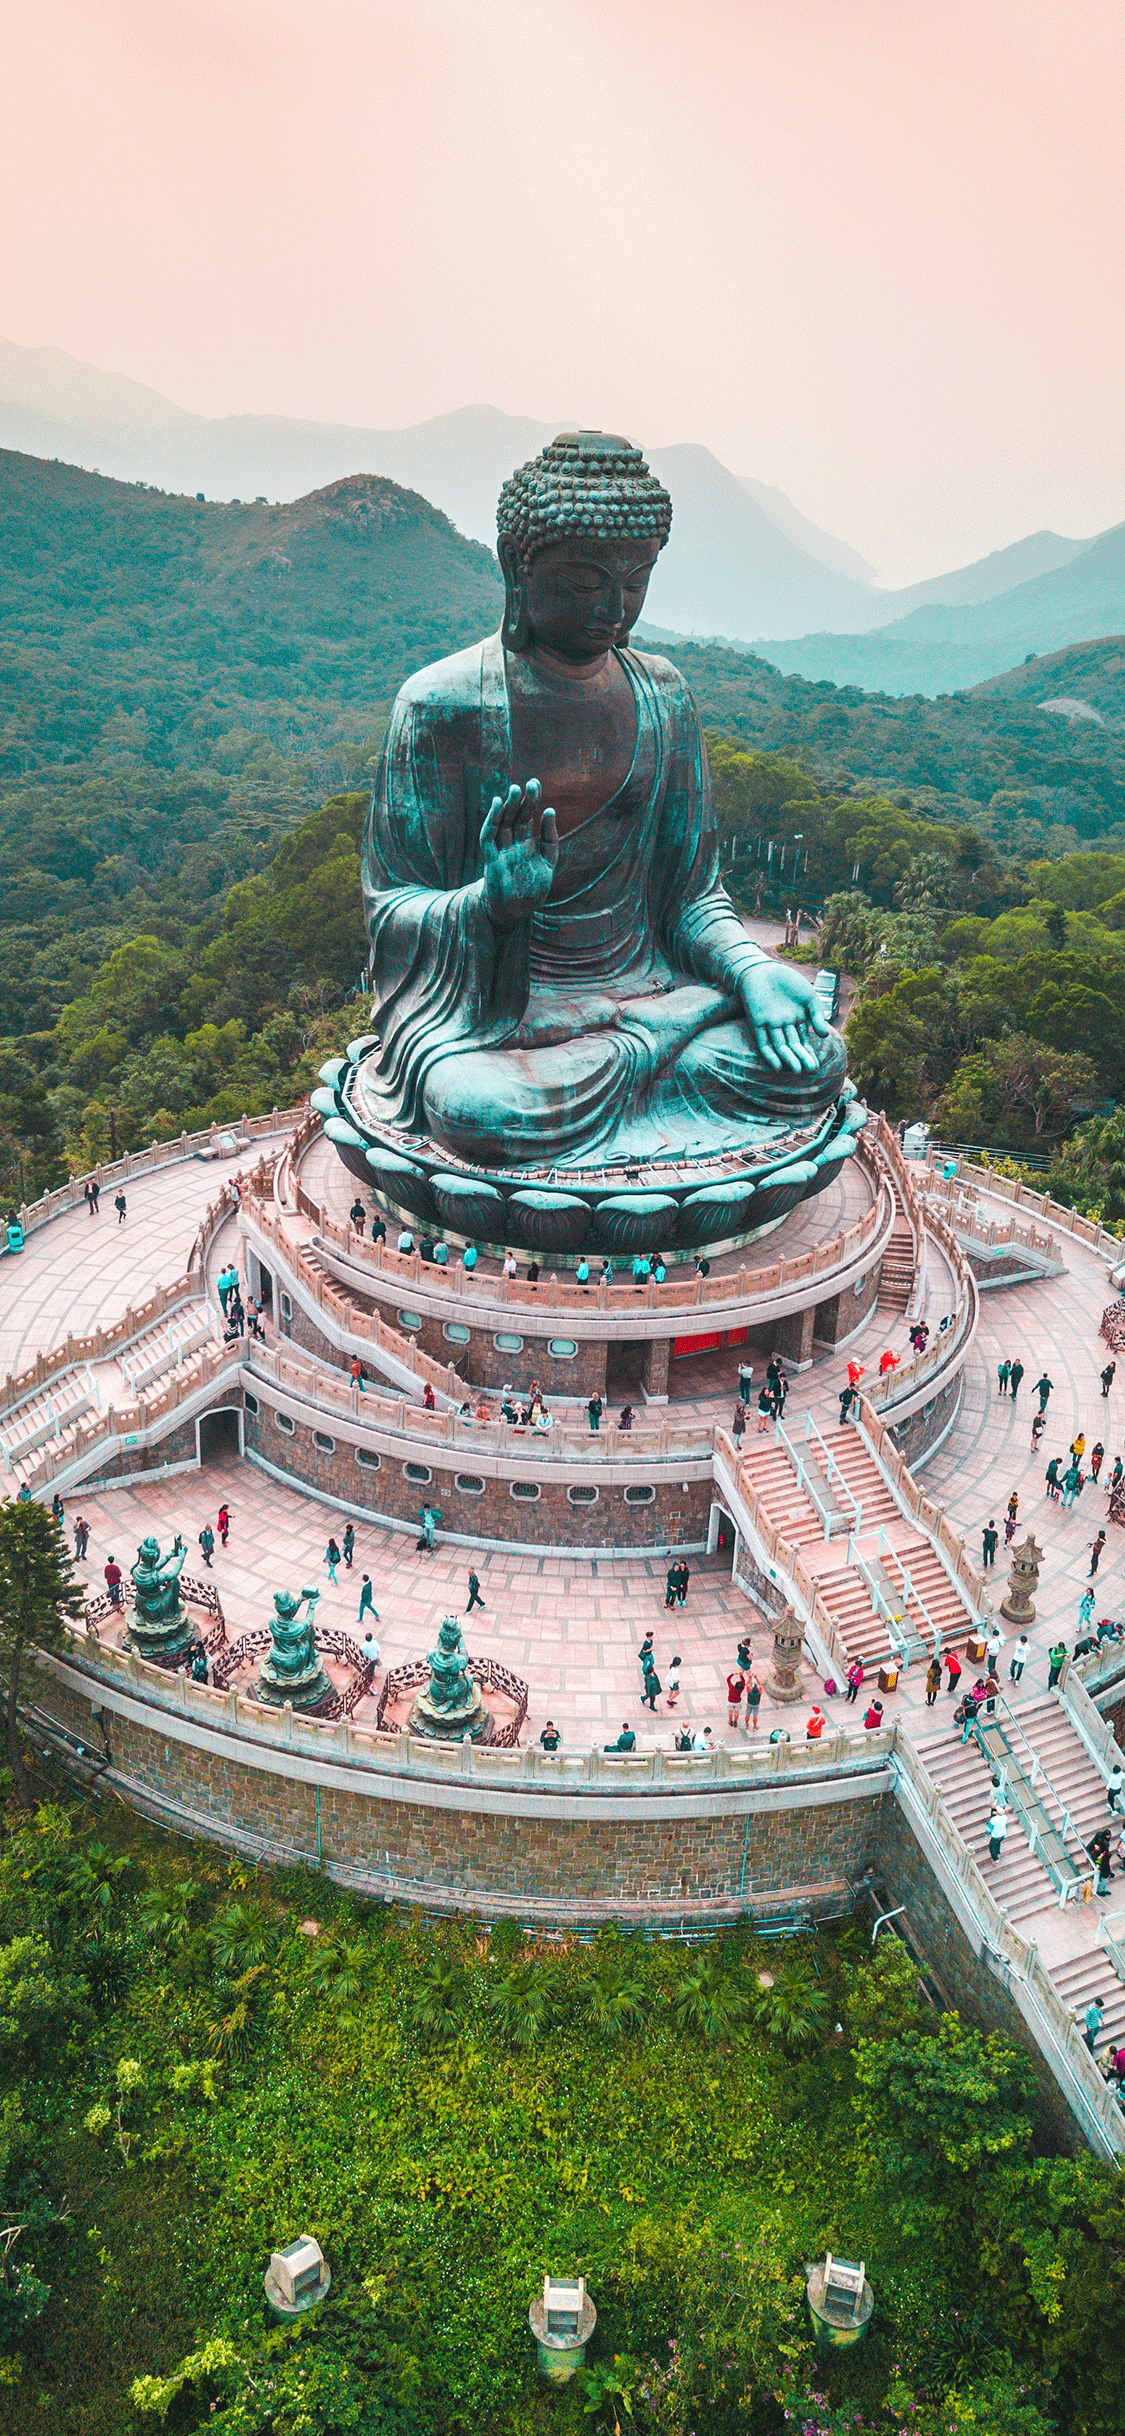 iPhone wallpaper budha hong kong Budha